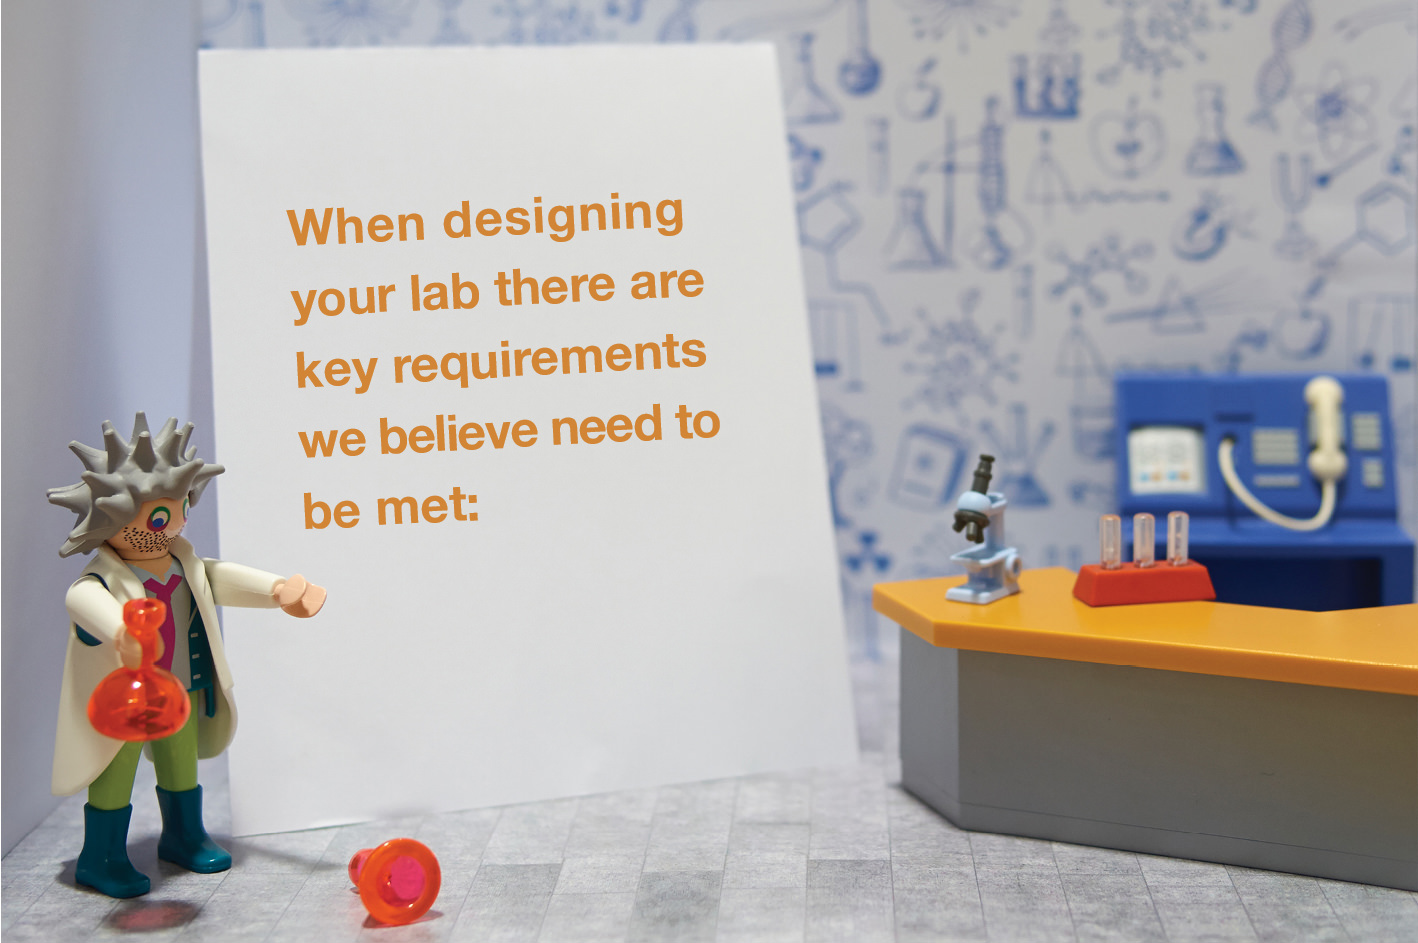 When designing your lab there are key requirements we believe need to be met: